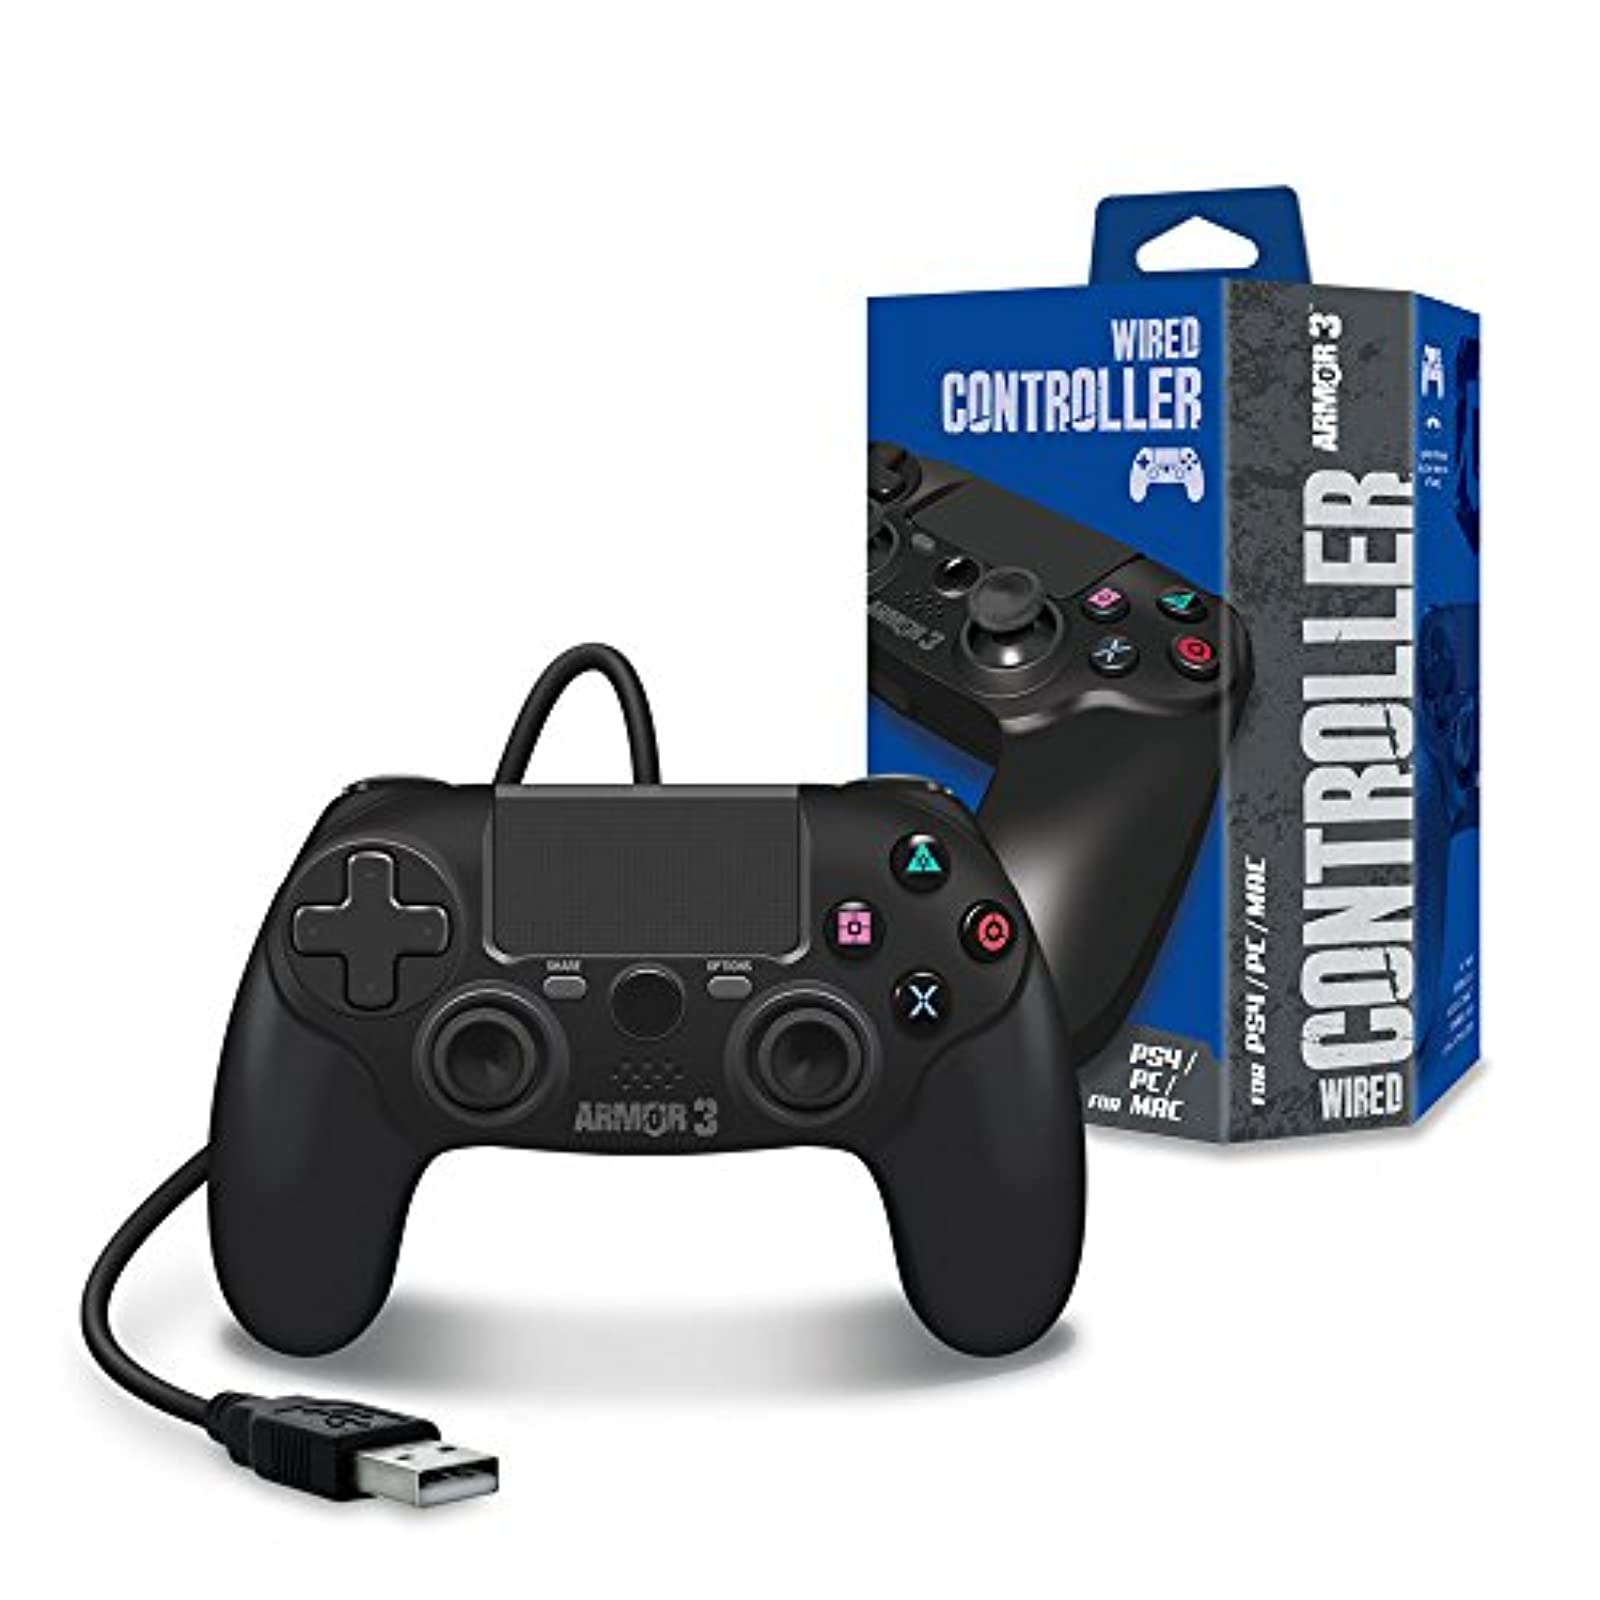 ARMOR3 Wired Game Controller For PS4/ PC/ MAC For PlayStation 4